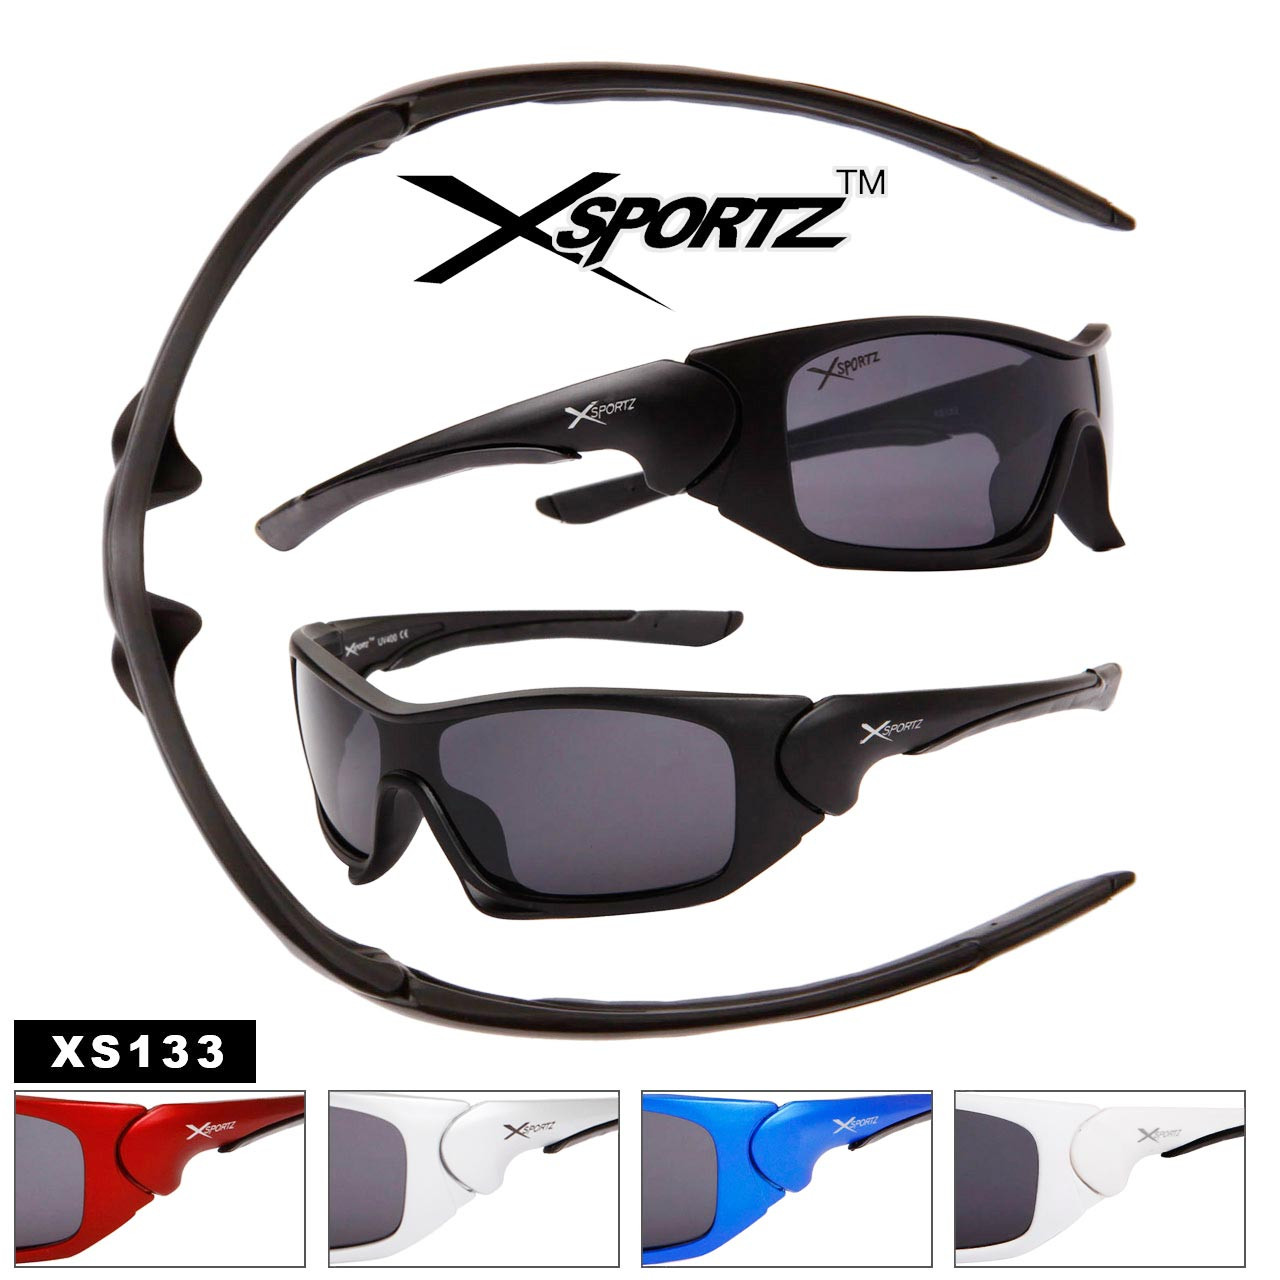 Xsportz Wholesale Sunglasses XS133